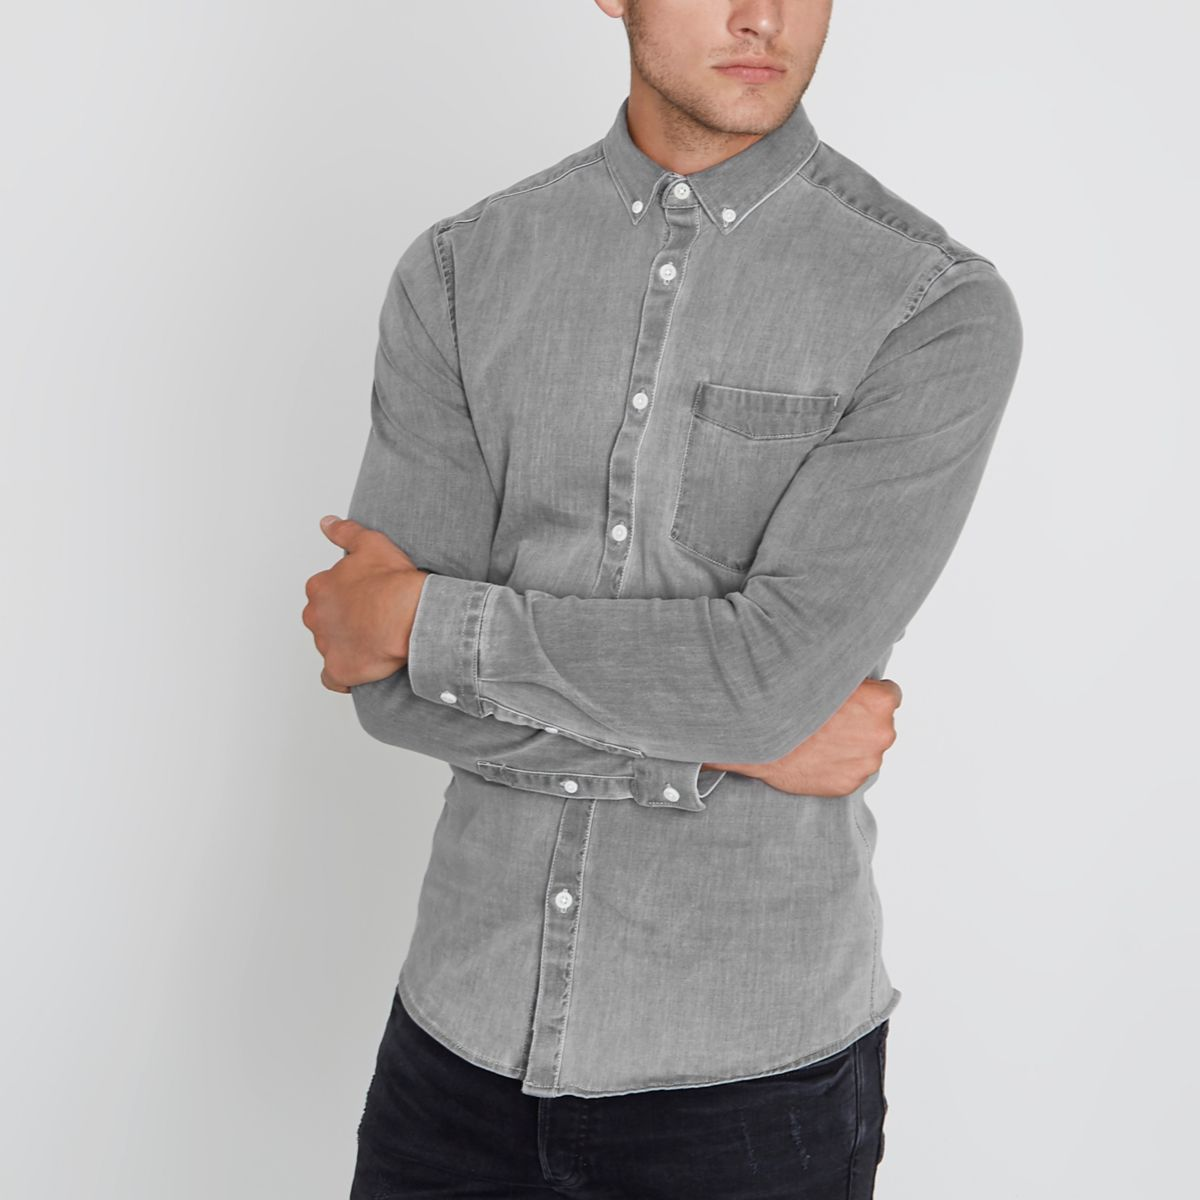 Washed grey muscle fit denim shirt - Long Sleeve Shirts - Shirts - men